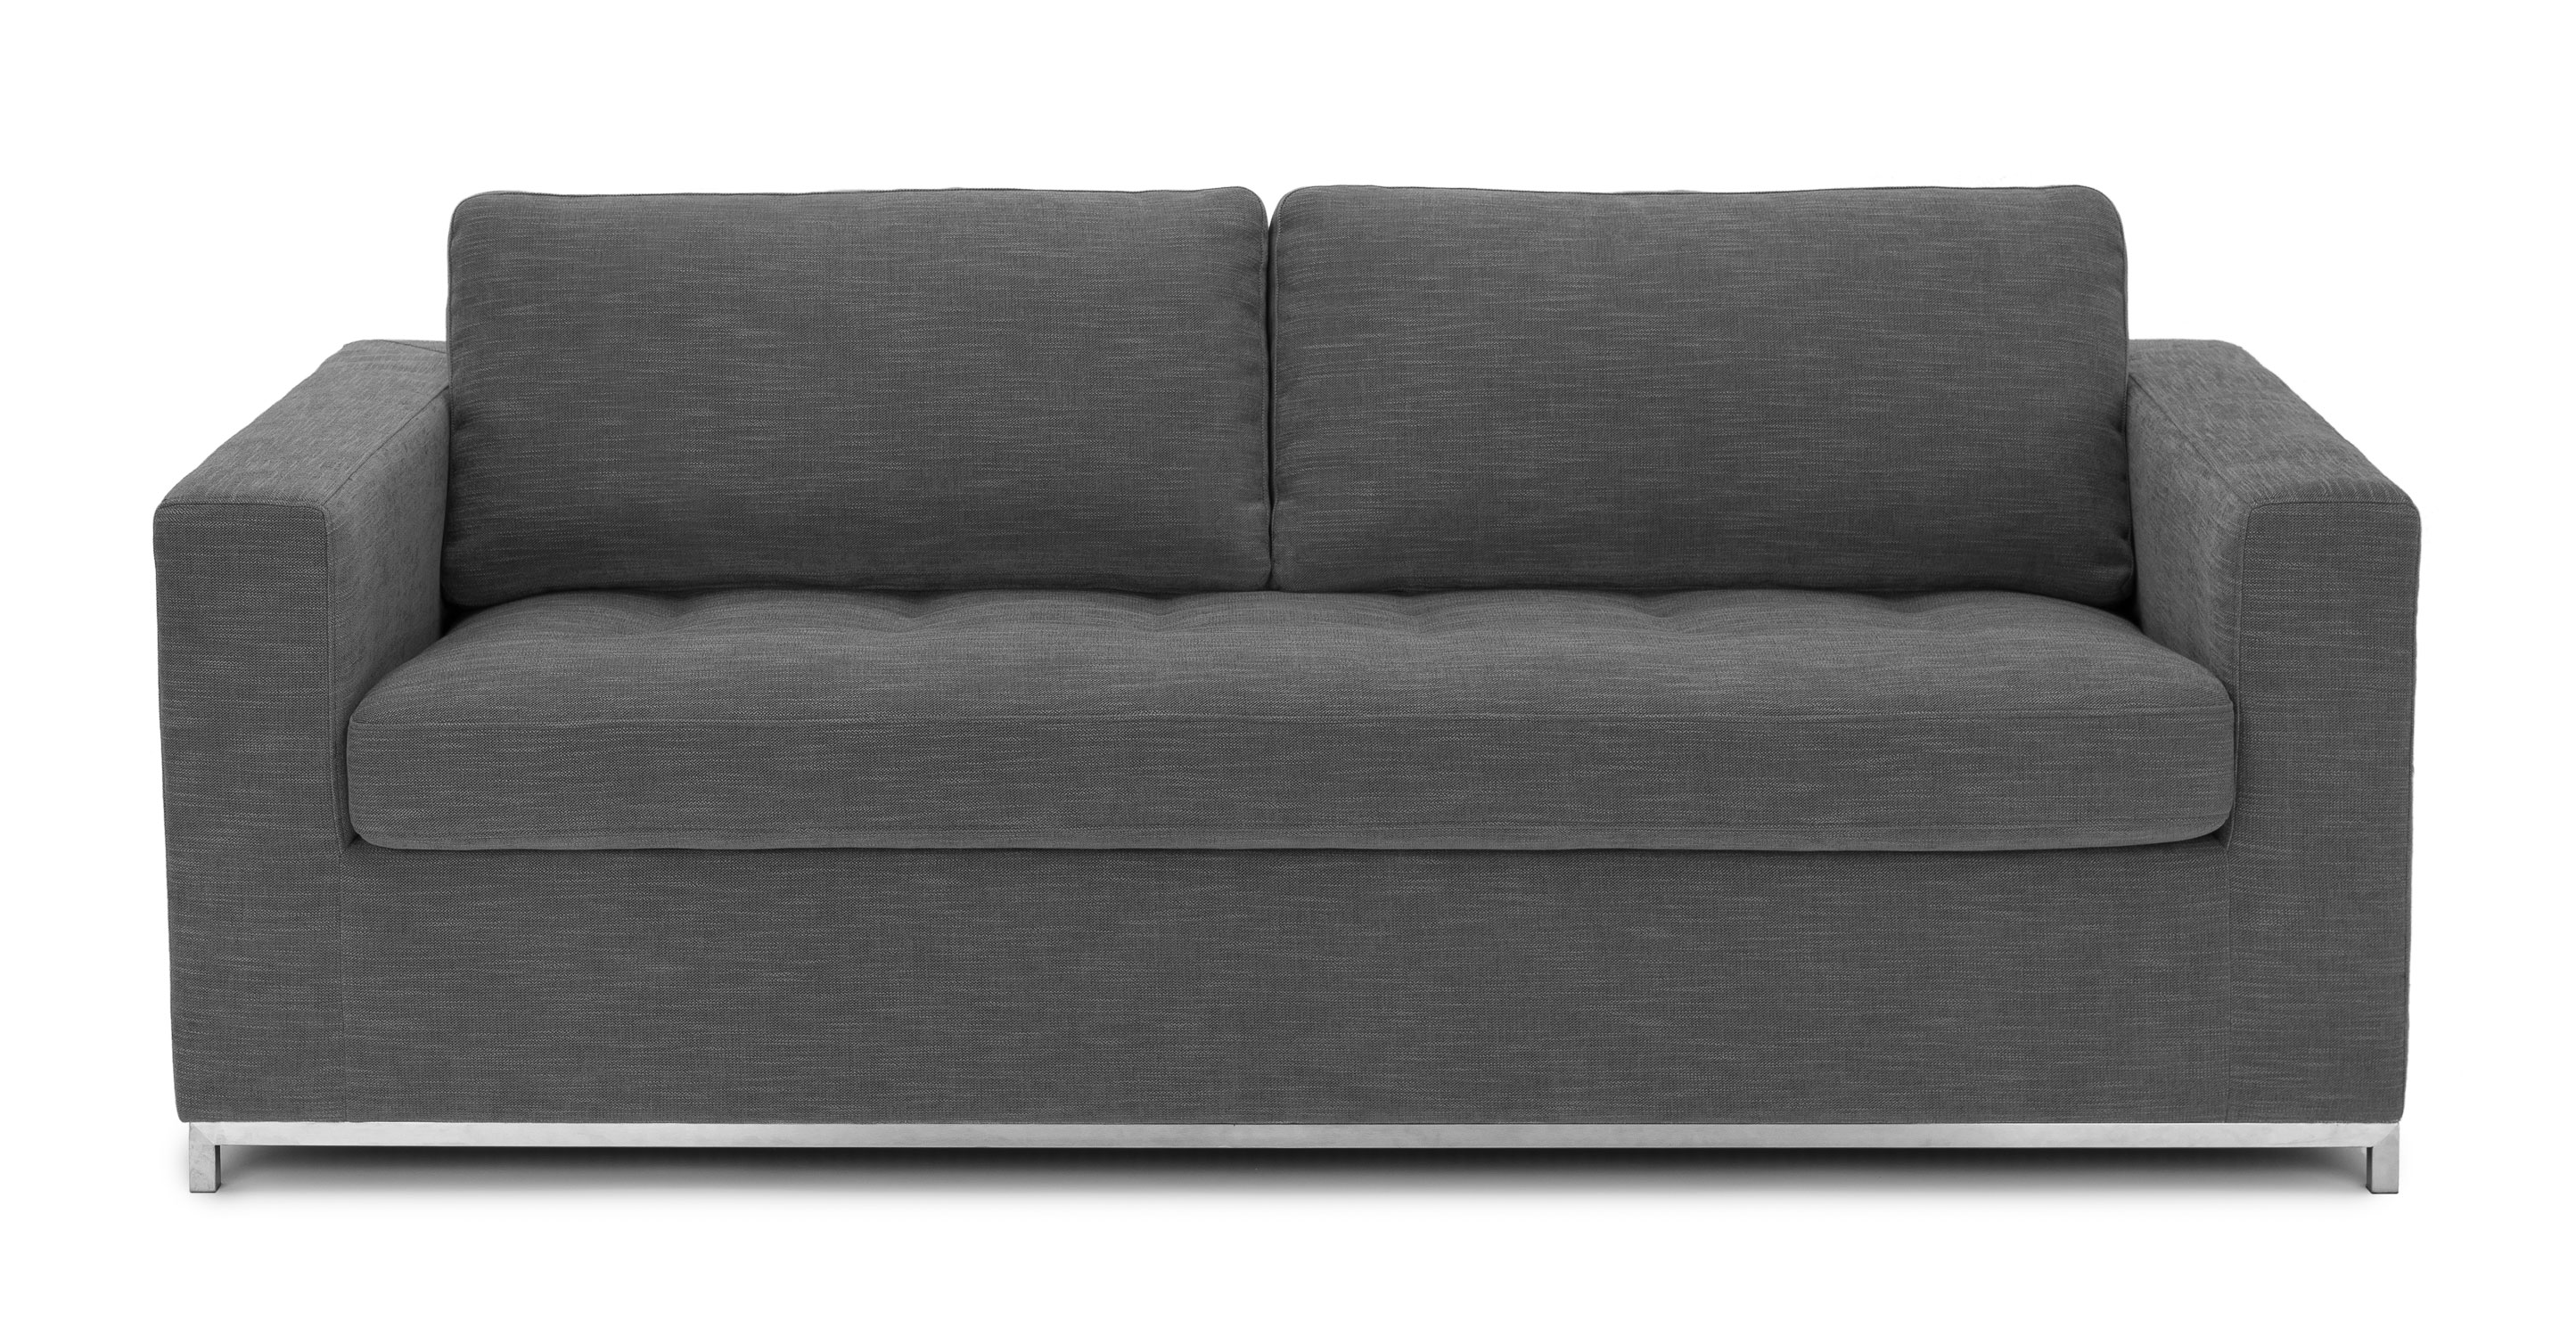 Modern Couch Soma Twilight Gray Sofa Bed